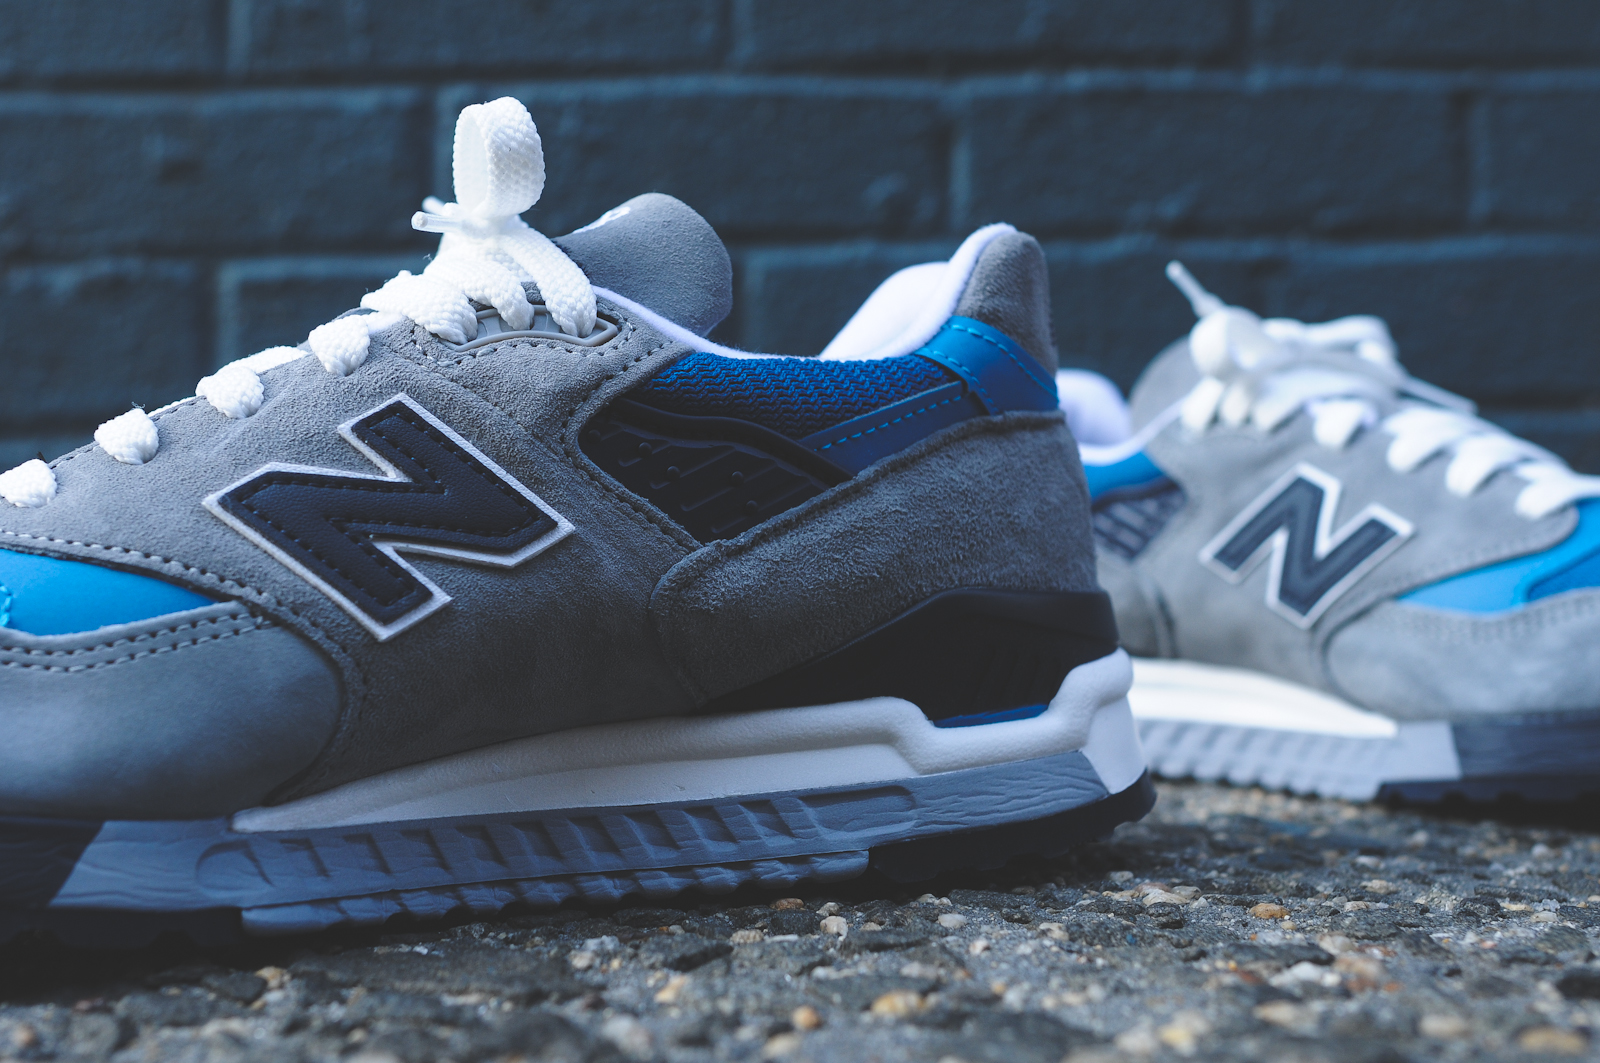 New-Balance-998-Authors-Moby-Dick-2